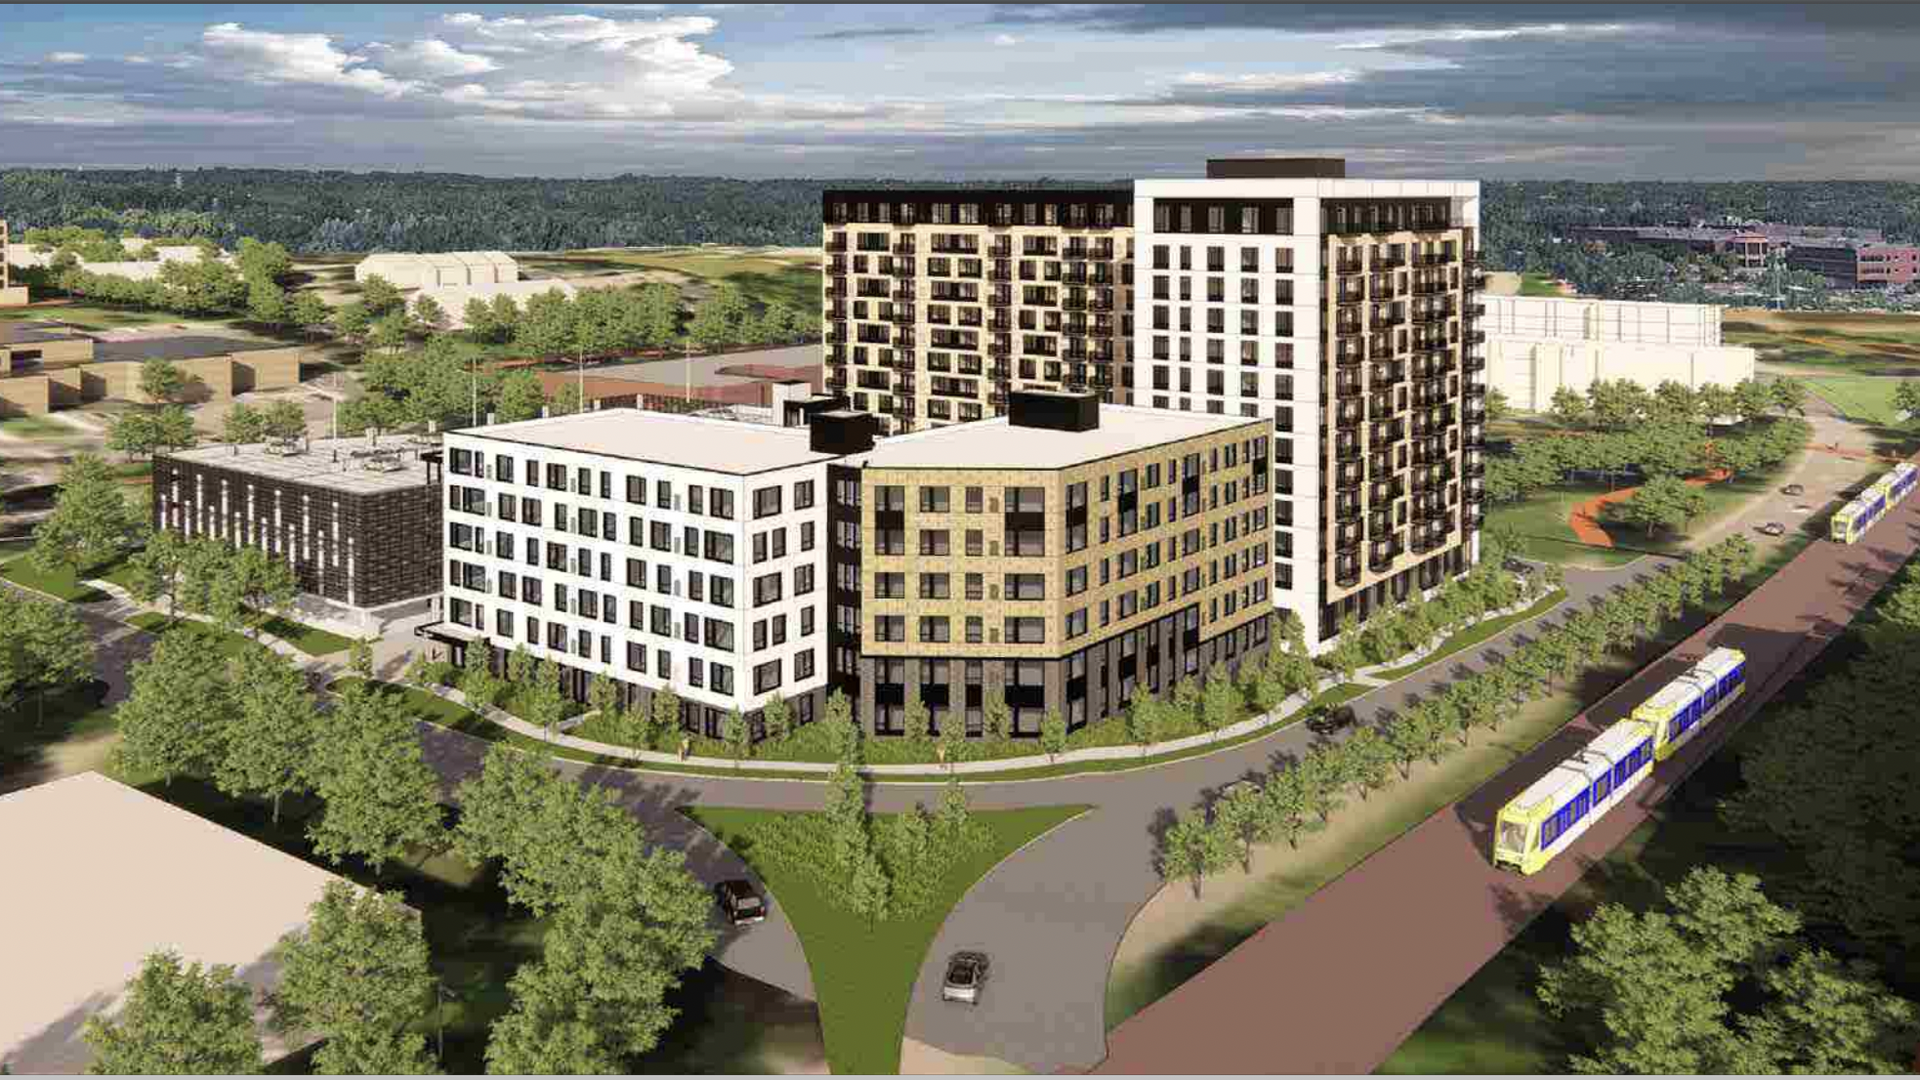 A rendering shows a planned complex in Minnetonka with as many as 400 apartments